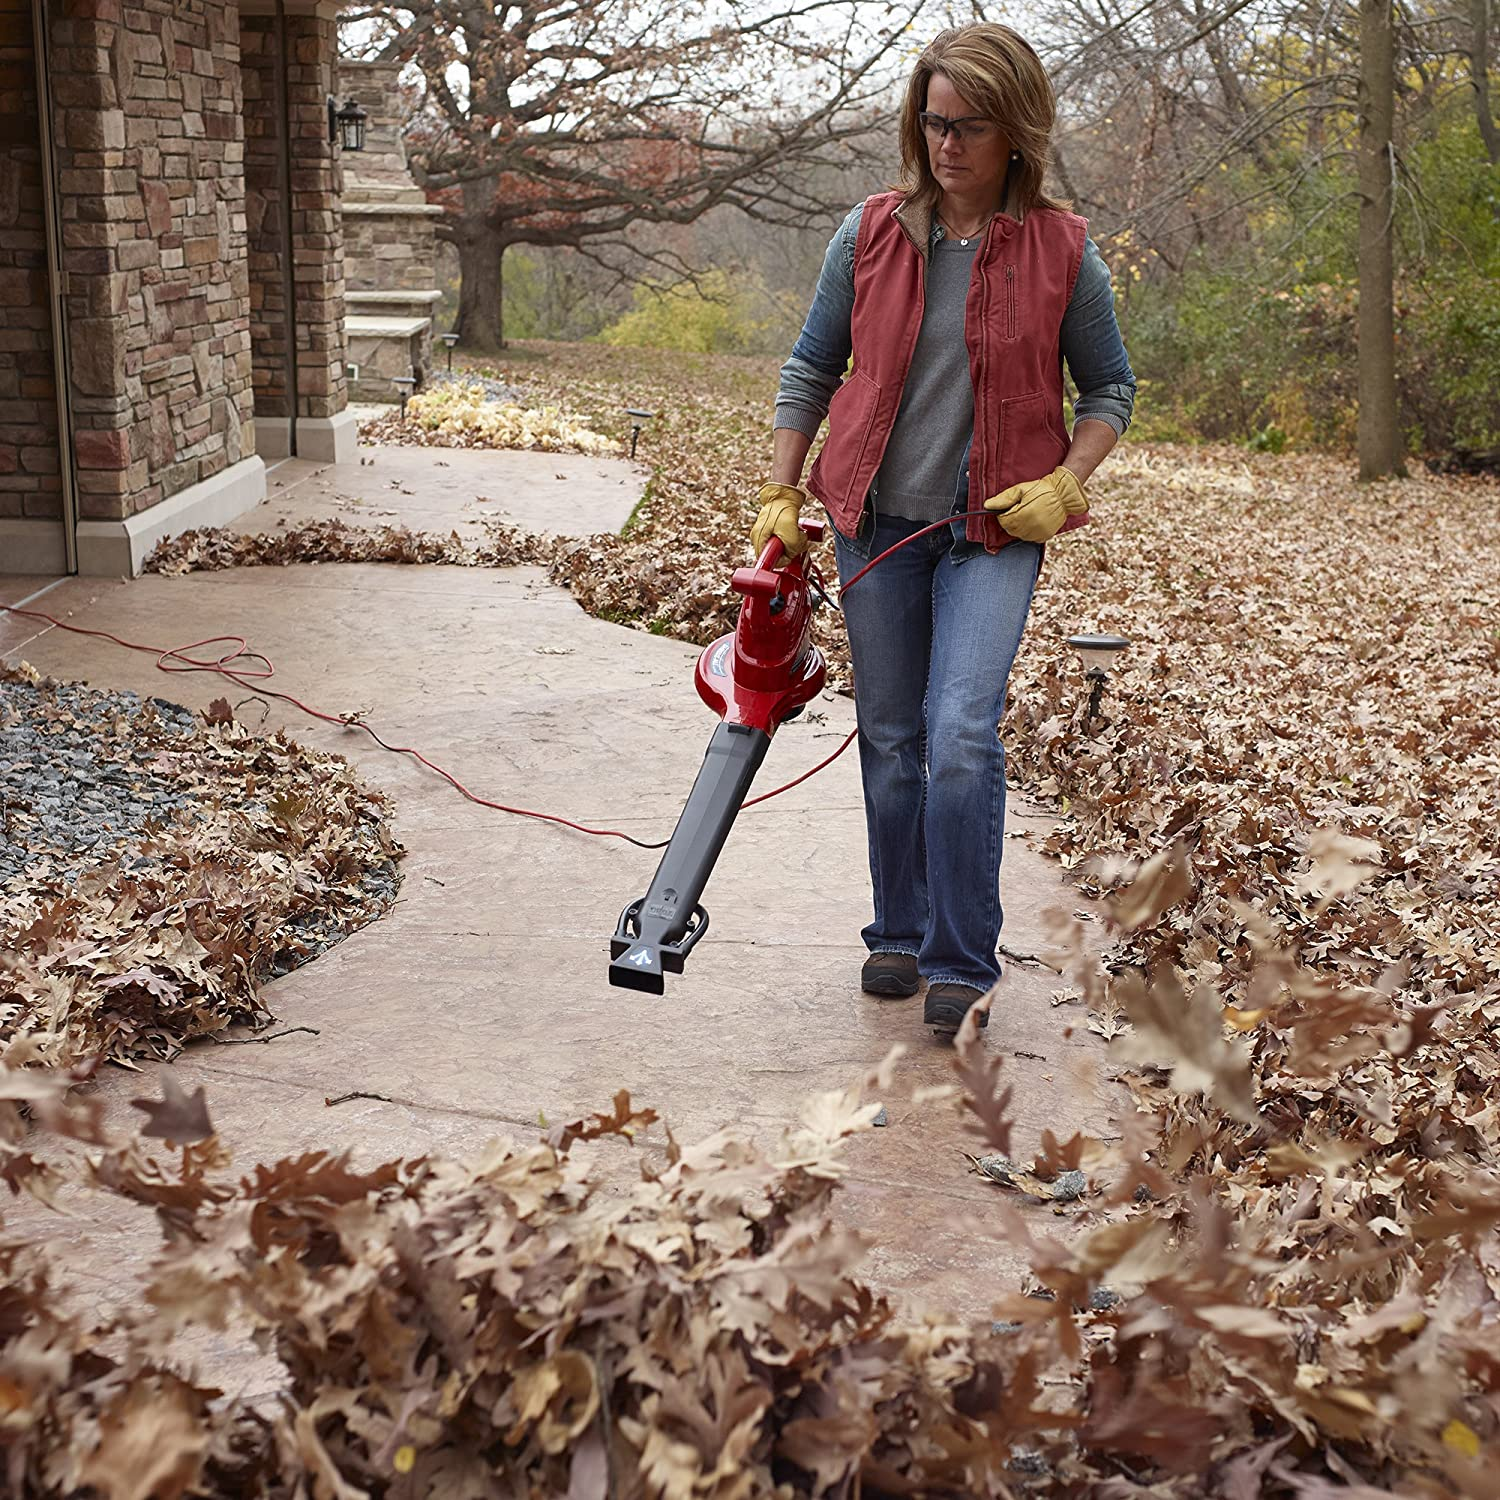 best leaf blower consumer reports